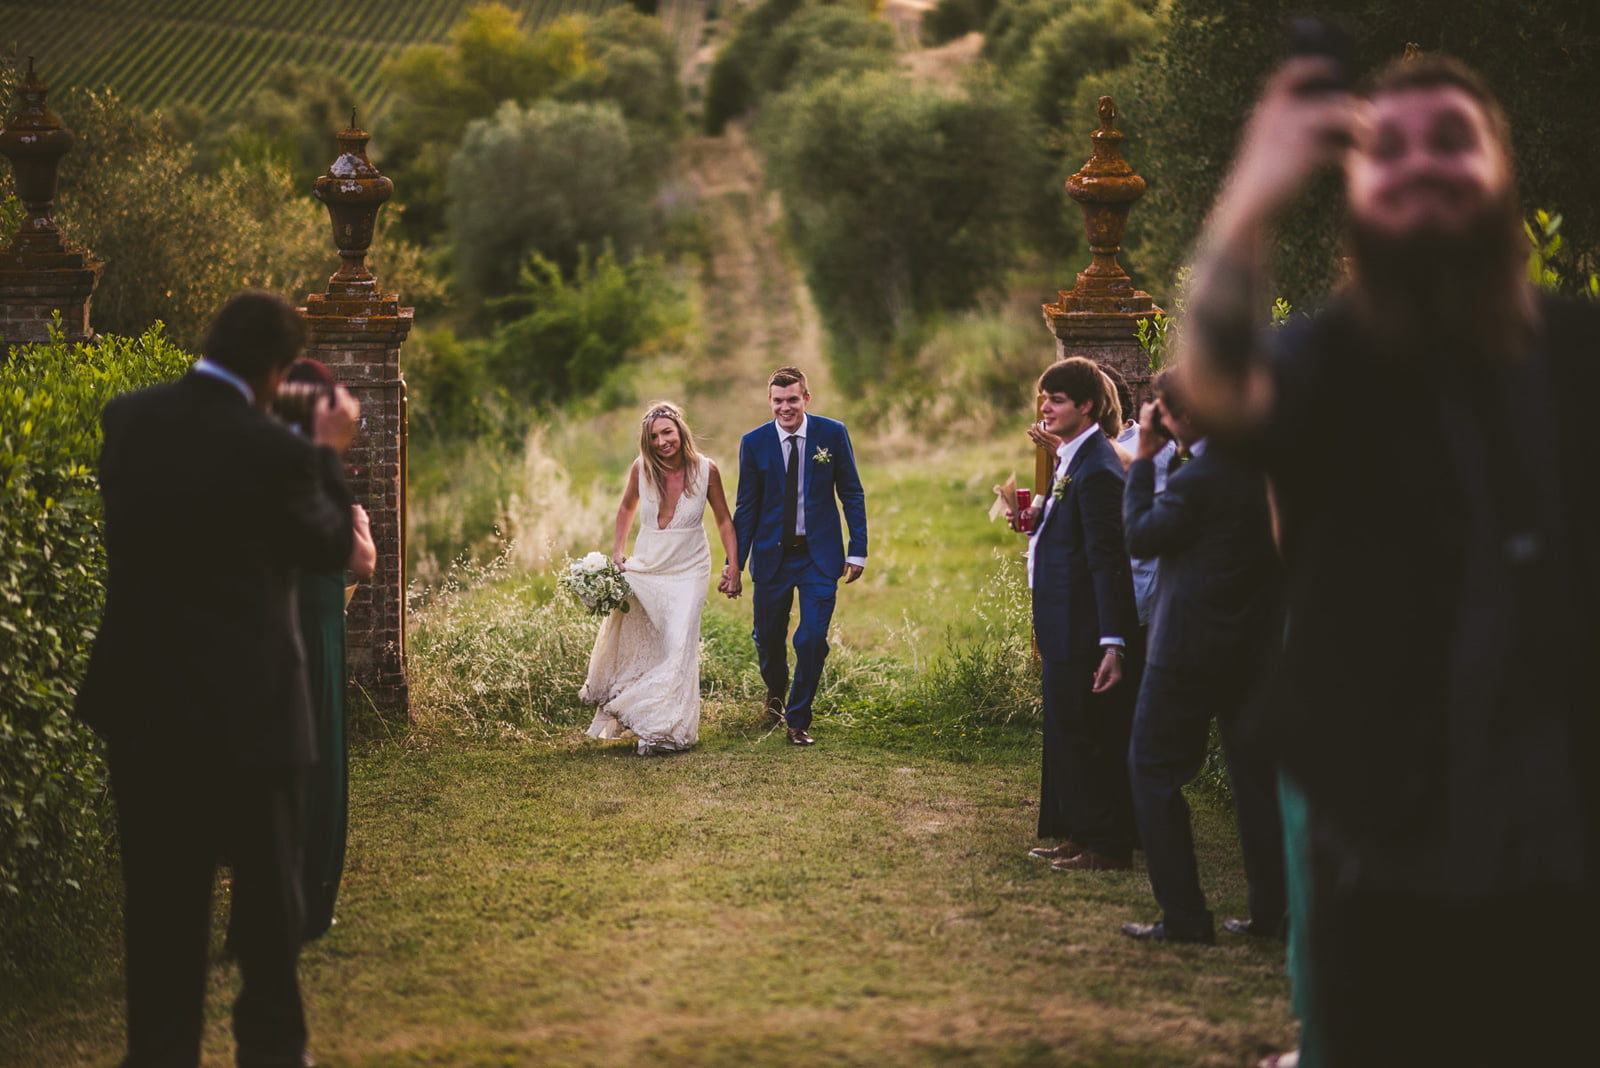 A+L Wedding at Montechiaro, Siena by Federico Pannacci 93